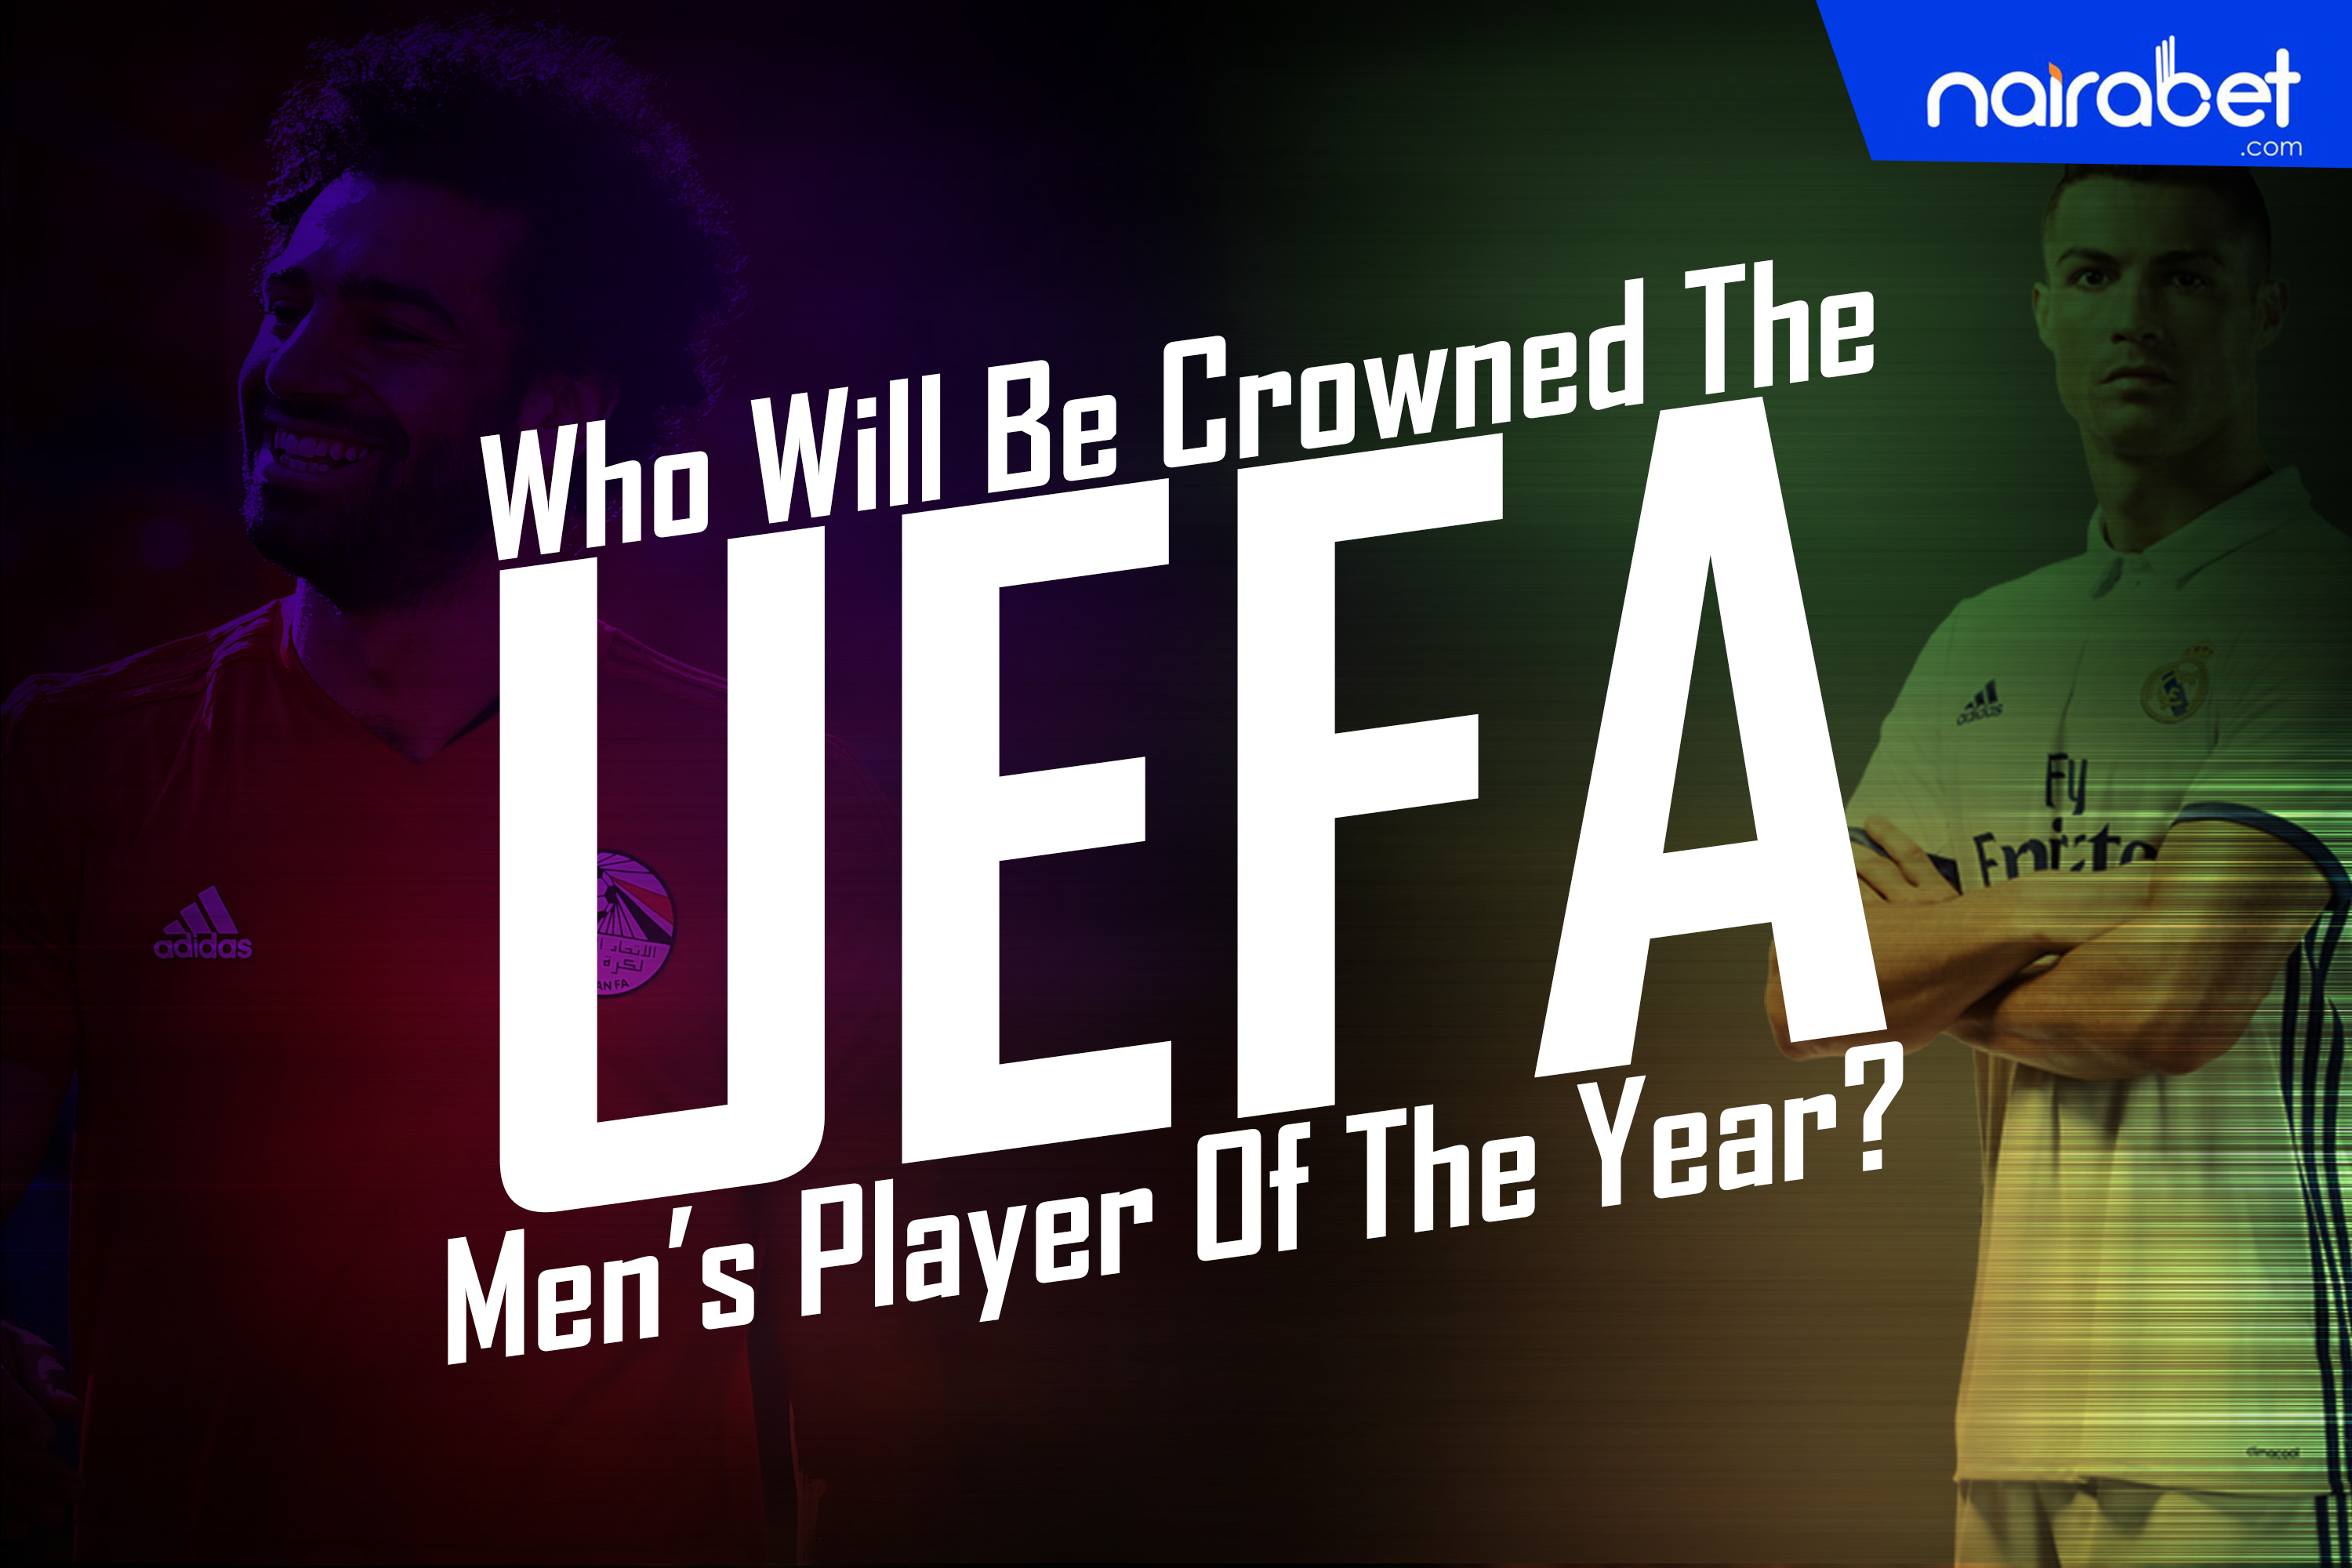 uefa men's player of the year